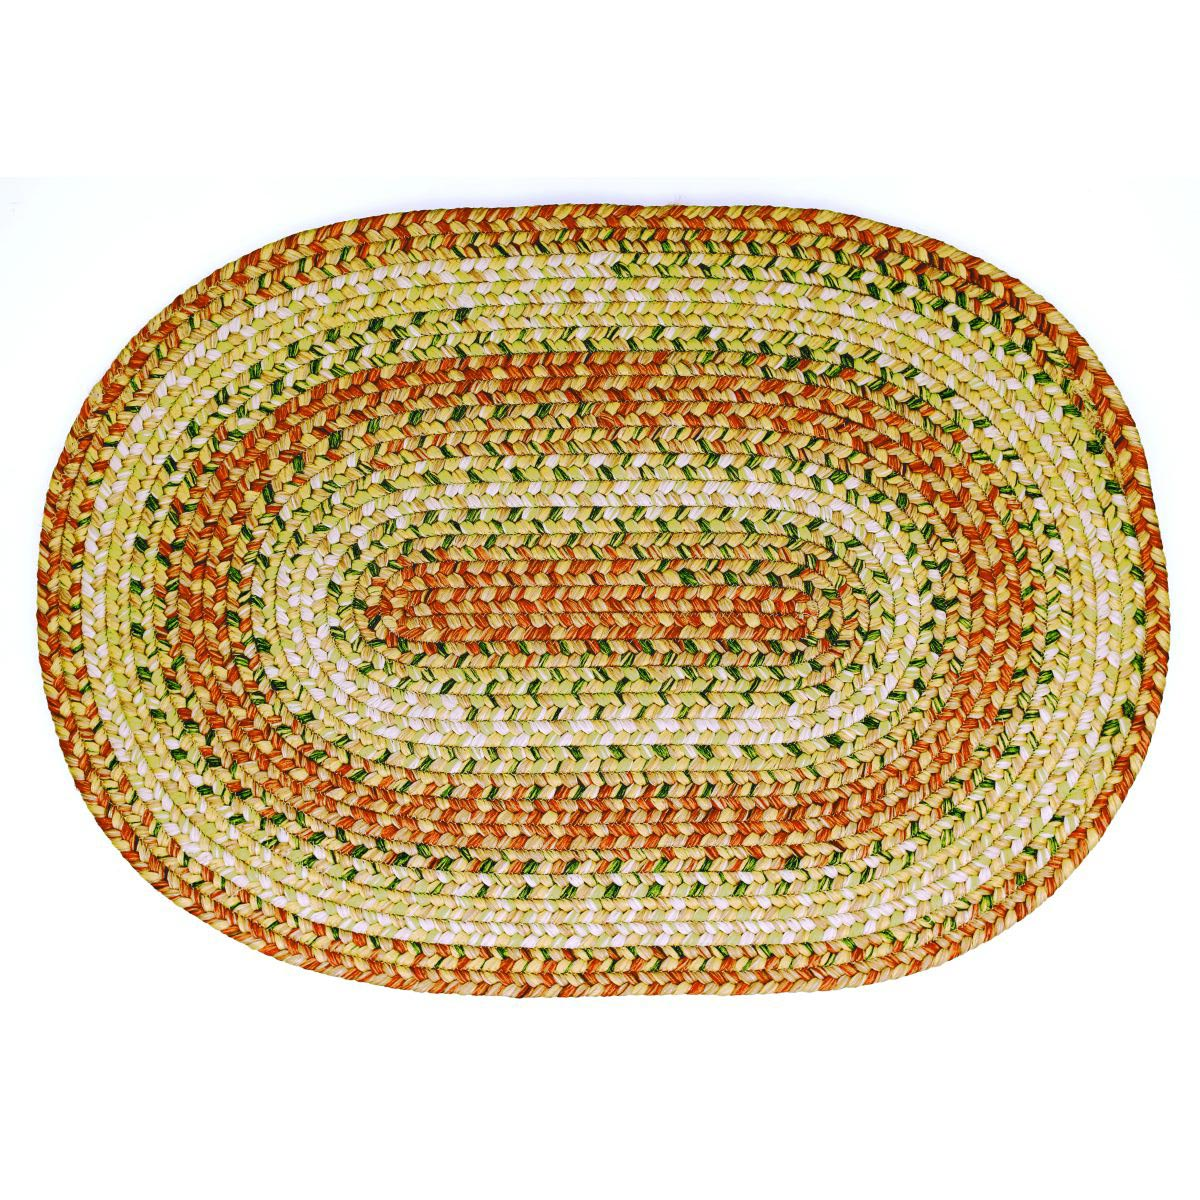 Versace Washable Rugs: Tuscany Ultra Durable Braided Area Rugs Indoor Outdoor